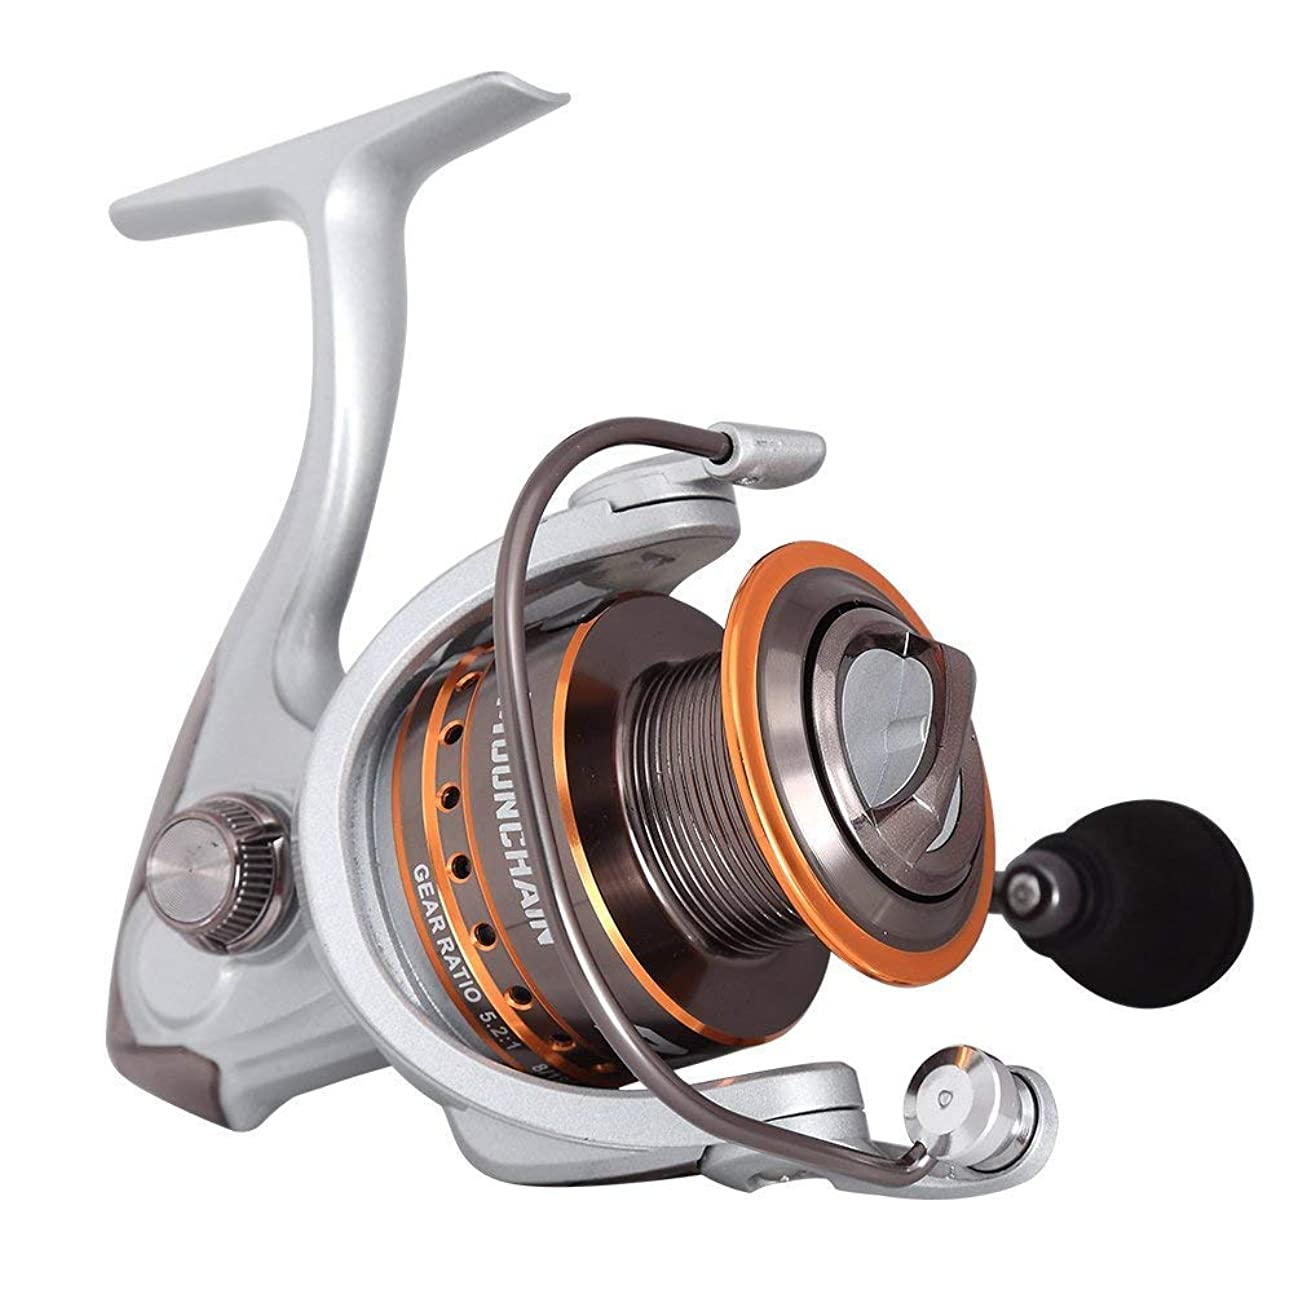 一方、スラムベックスMounchain Spinning Reel Ultra Light Weight Smooth Fishing Reels, Powerful Carbon Fiber Drag, Up to 25 Lbs/ 11.5 Kg Drag リール 141[並行輸入]